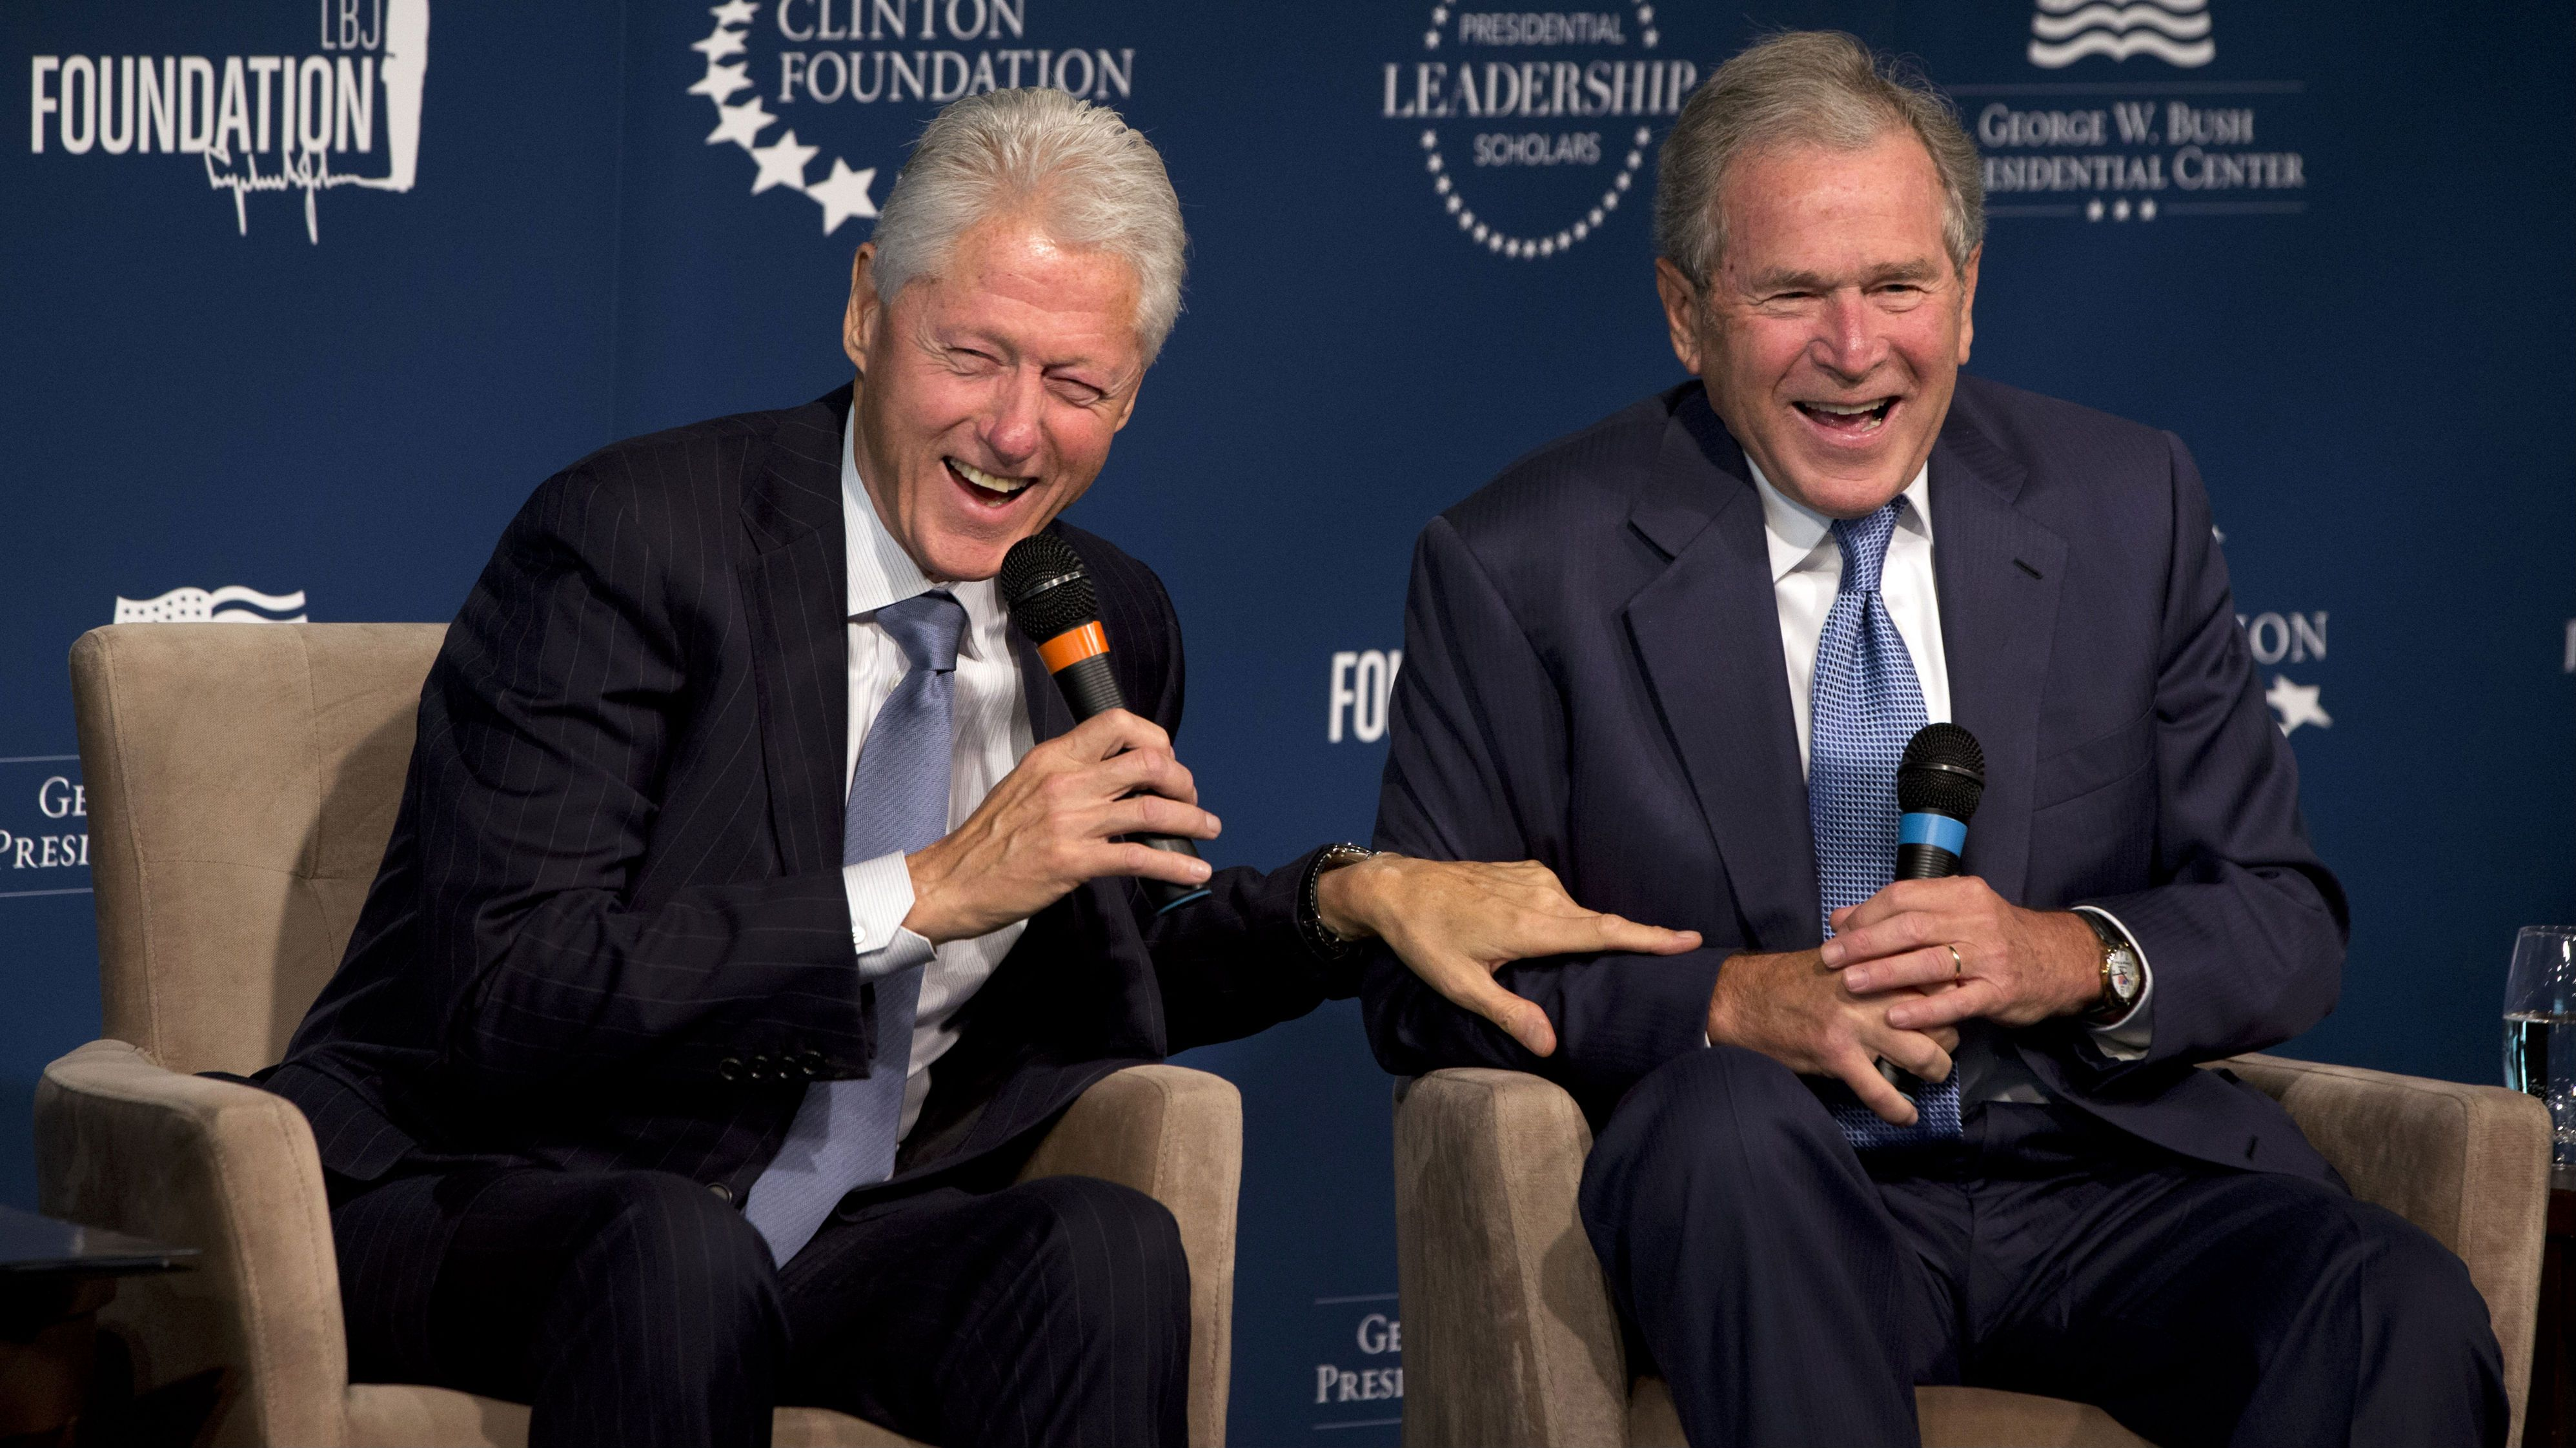 Former Presidents Bill Clinton, left, and George W. Bush, laugh while participating in the Presidential Leadership Scholars Program Launch, Monday, Sept. 8, 2014, at The Newseum in Washington. The two are launching a new scholars program at four presidential libraries, aiming to help academics and business leaders learn more about presidential leadership. (AP Photo/Jacquelyn Martin)